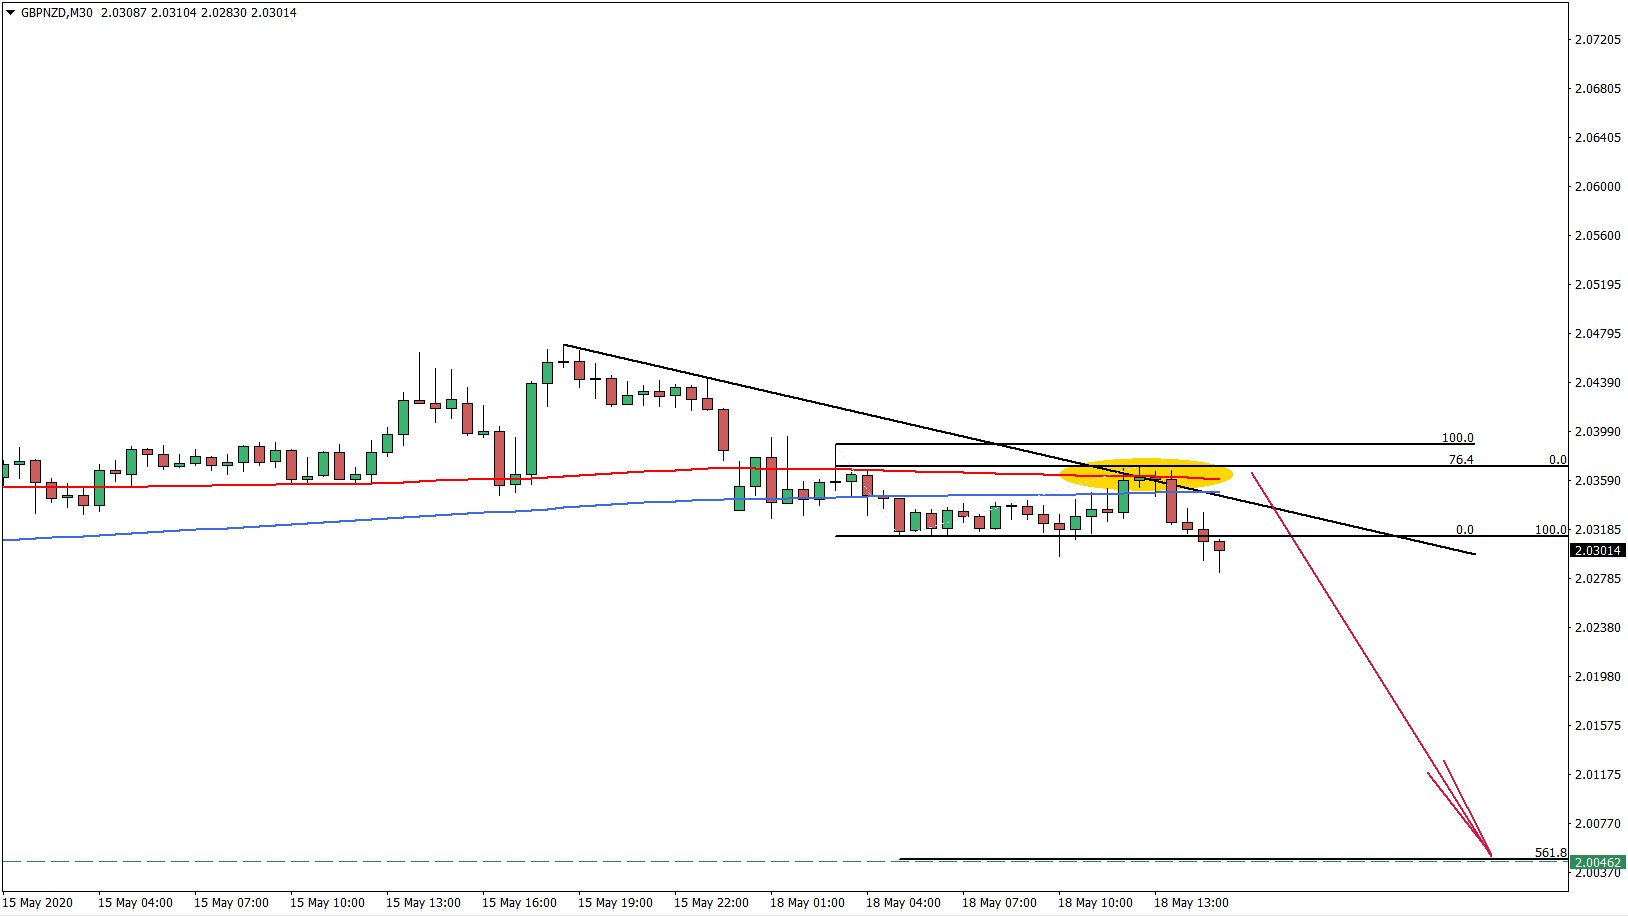 GBPNZD Hourly Chart May 18th 2020